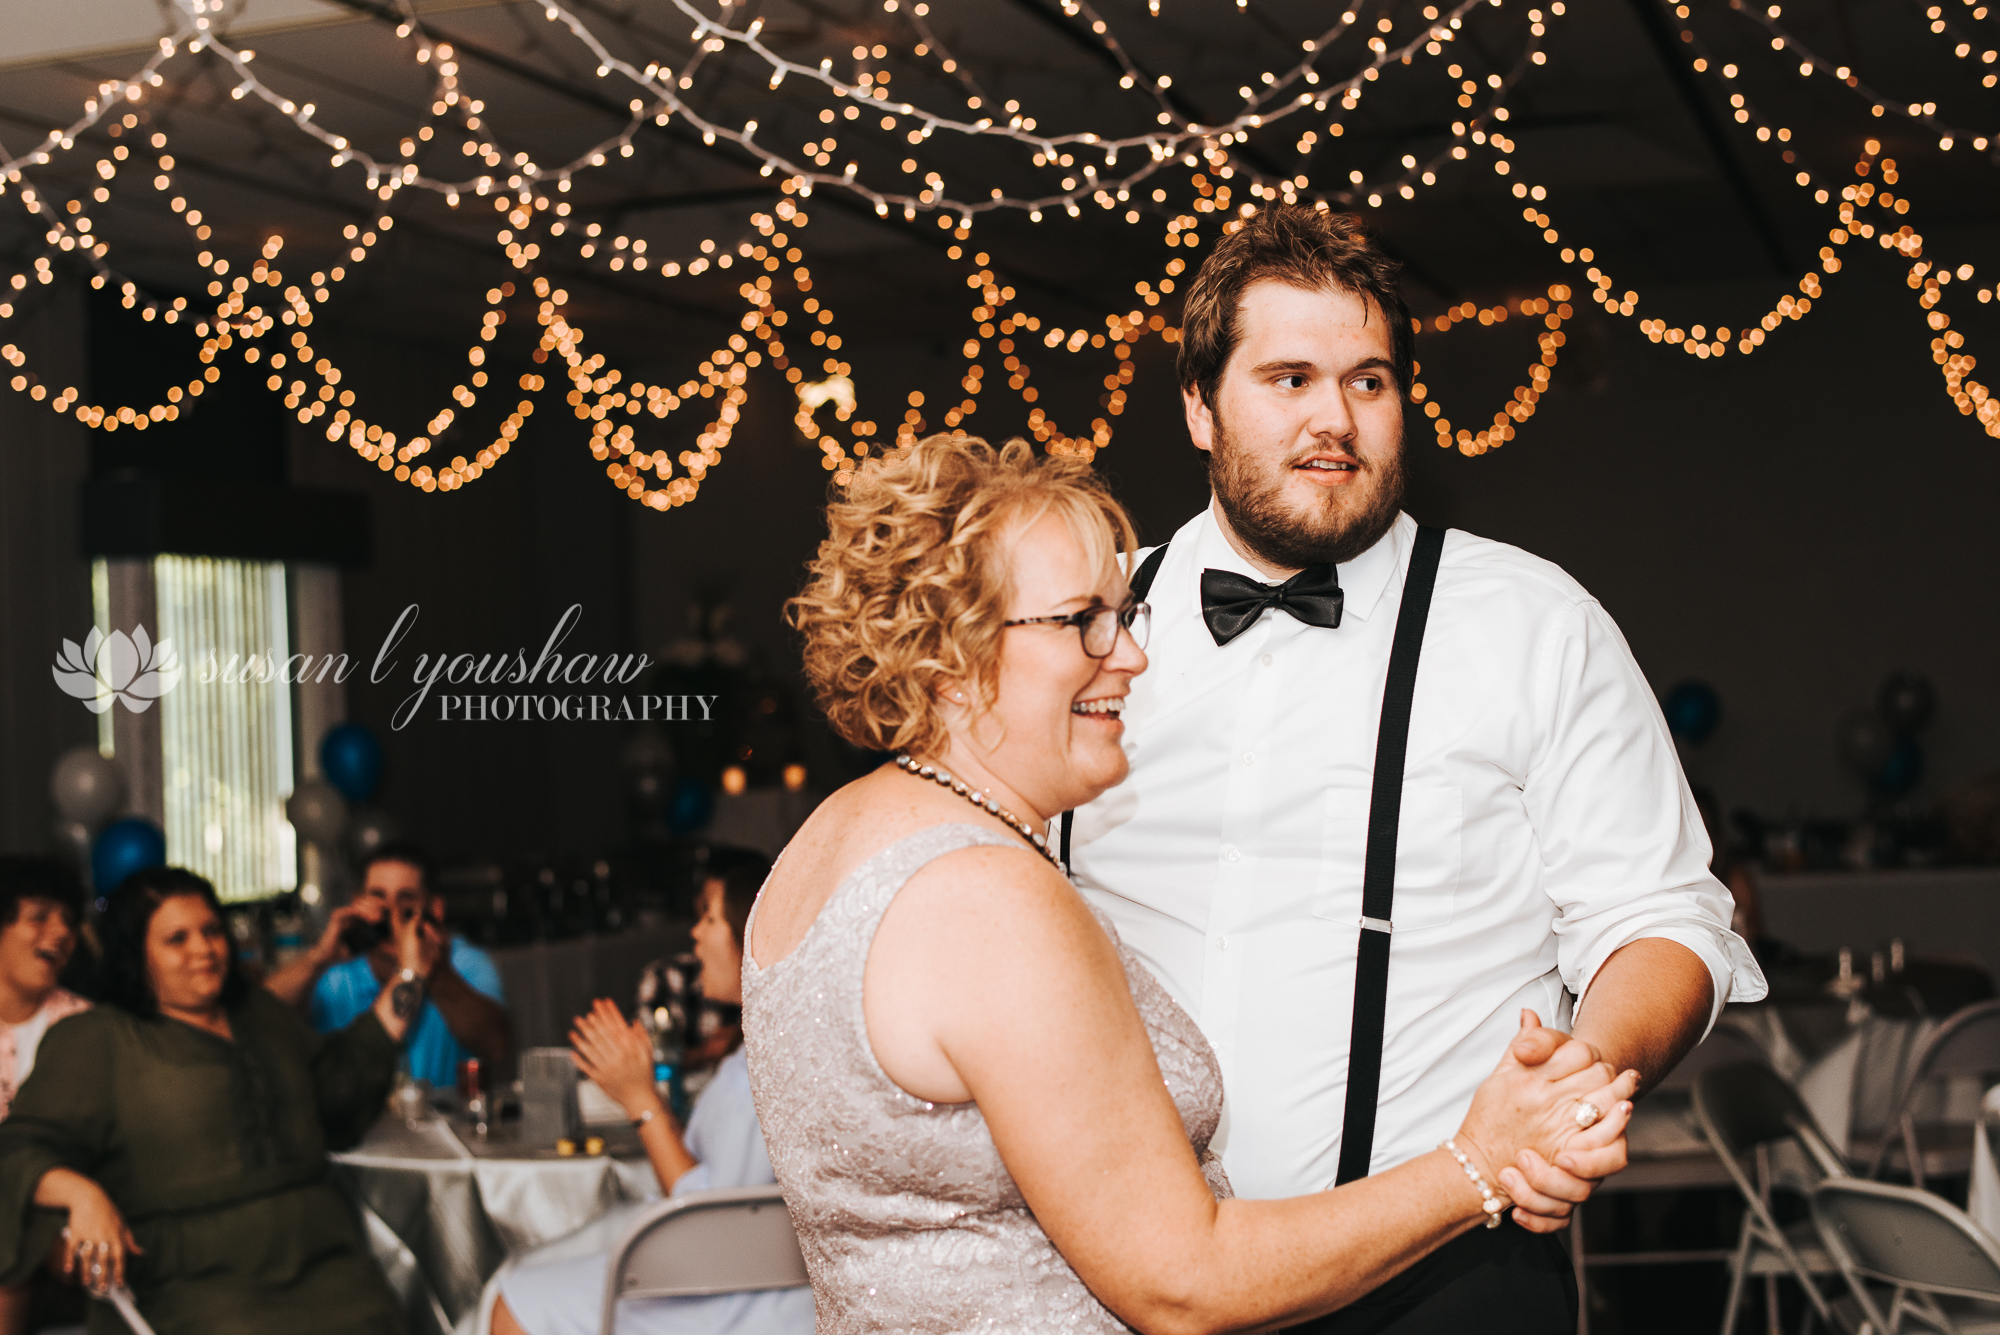 Katelyn and Wes Wedding Photos 07-13-2019 SLY Photography-119.jpg